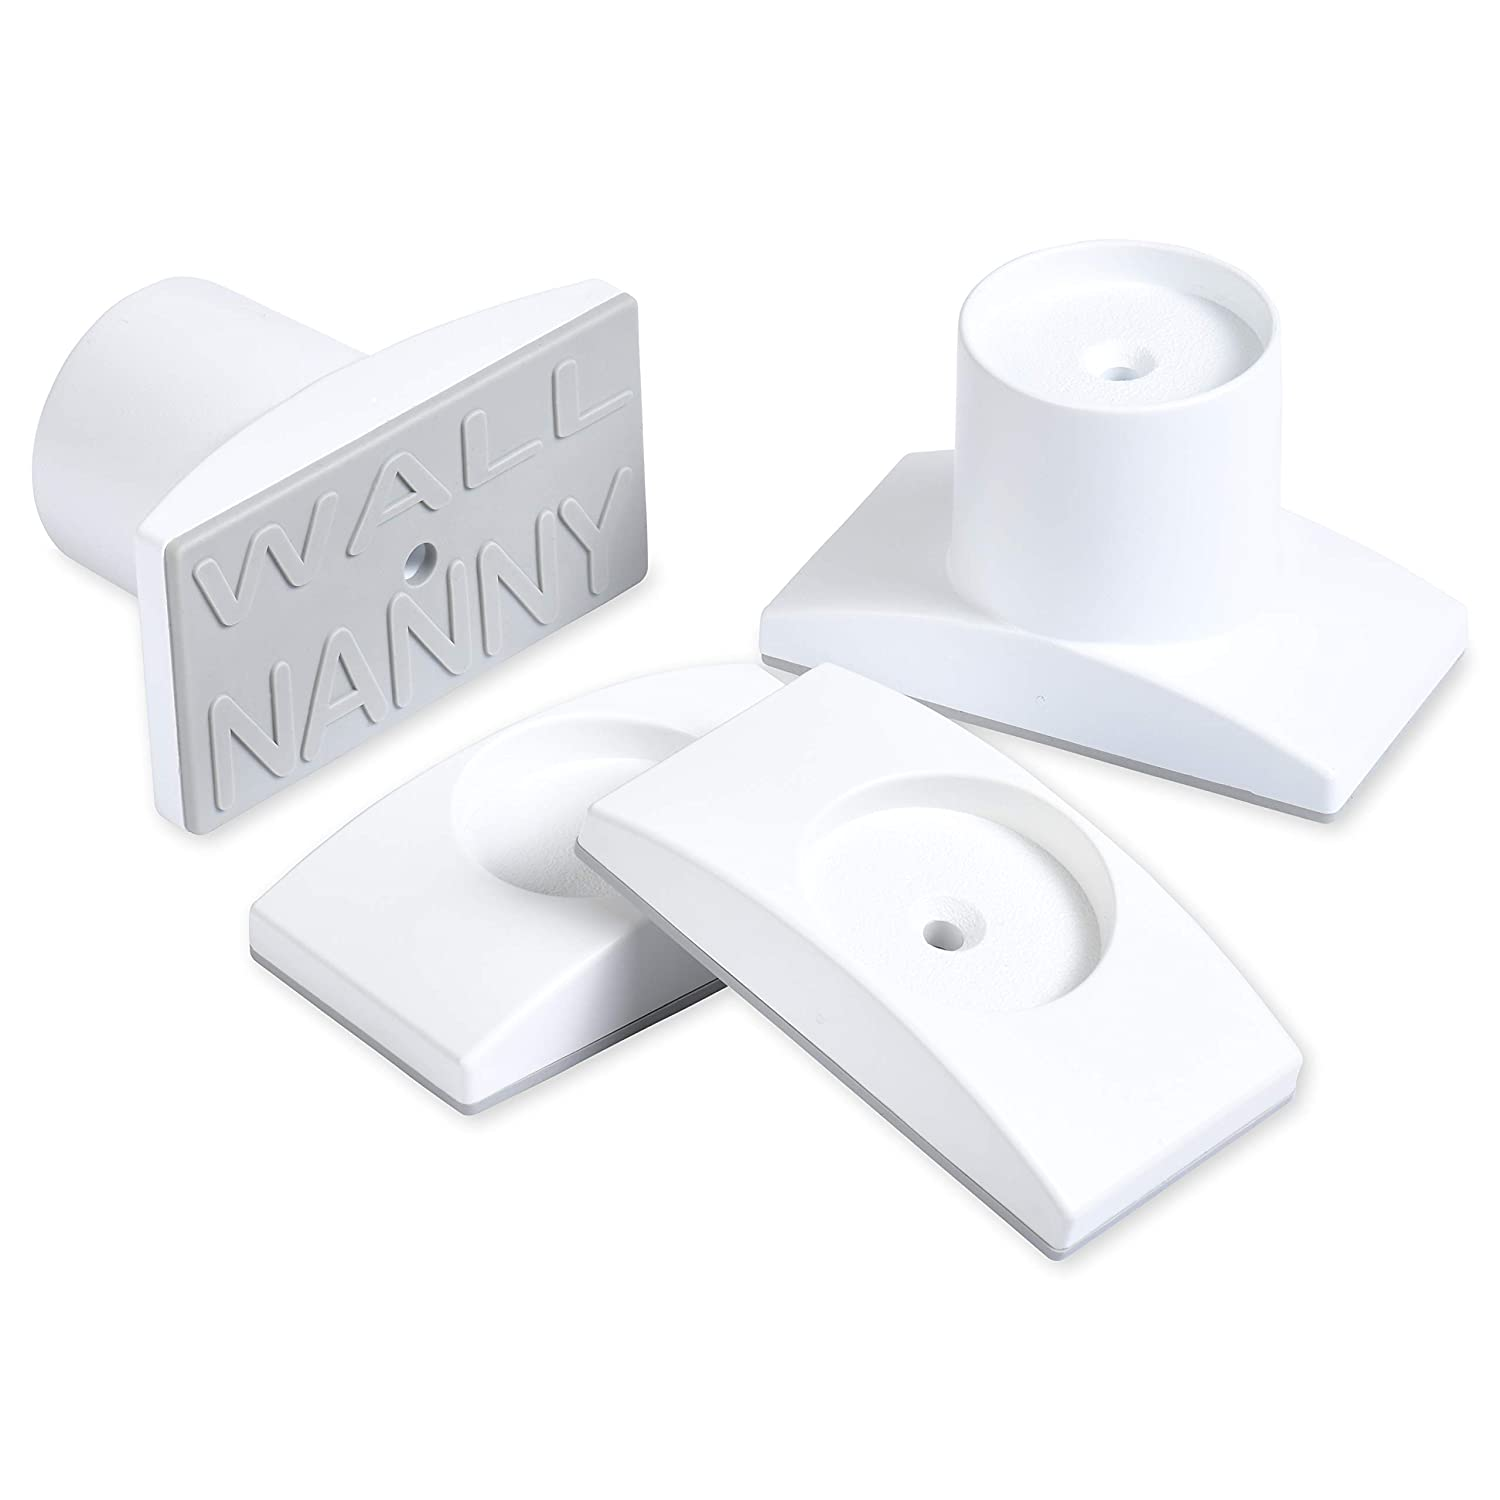 "Wall Nanny Extender - 2.5 Inch Baby Gate Extension Kit (Made in USA) Extends Pressure Mounted Gates + Protects Walls + Stabilizes Gate - Child Pet & Dog Gates - Works on Stairs - Extends 2.5"" Total"